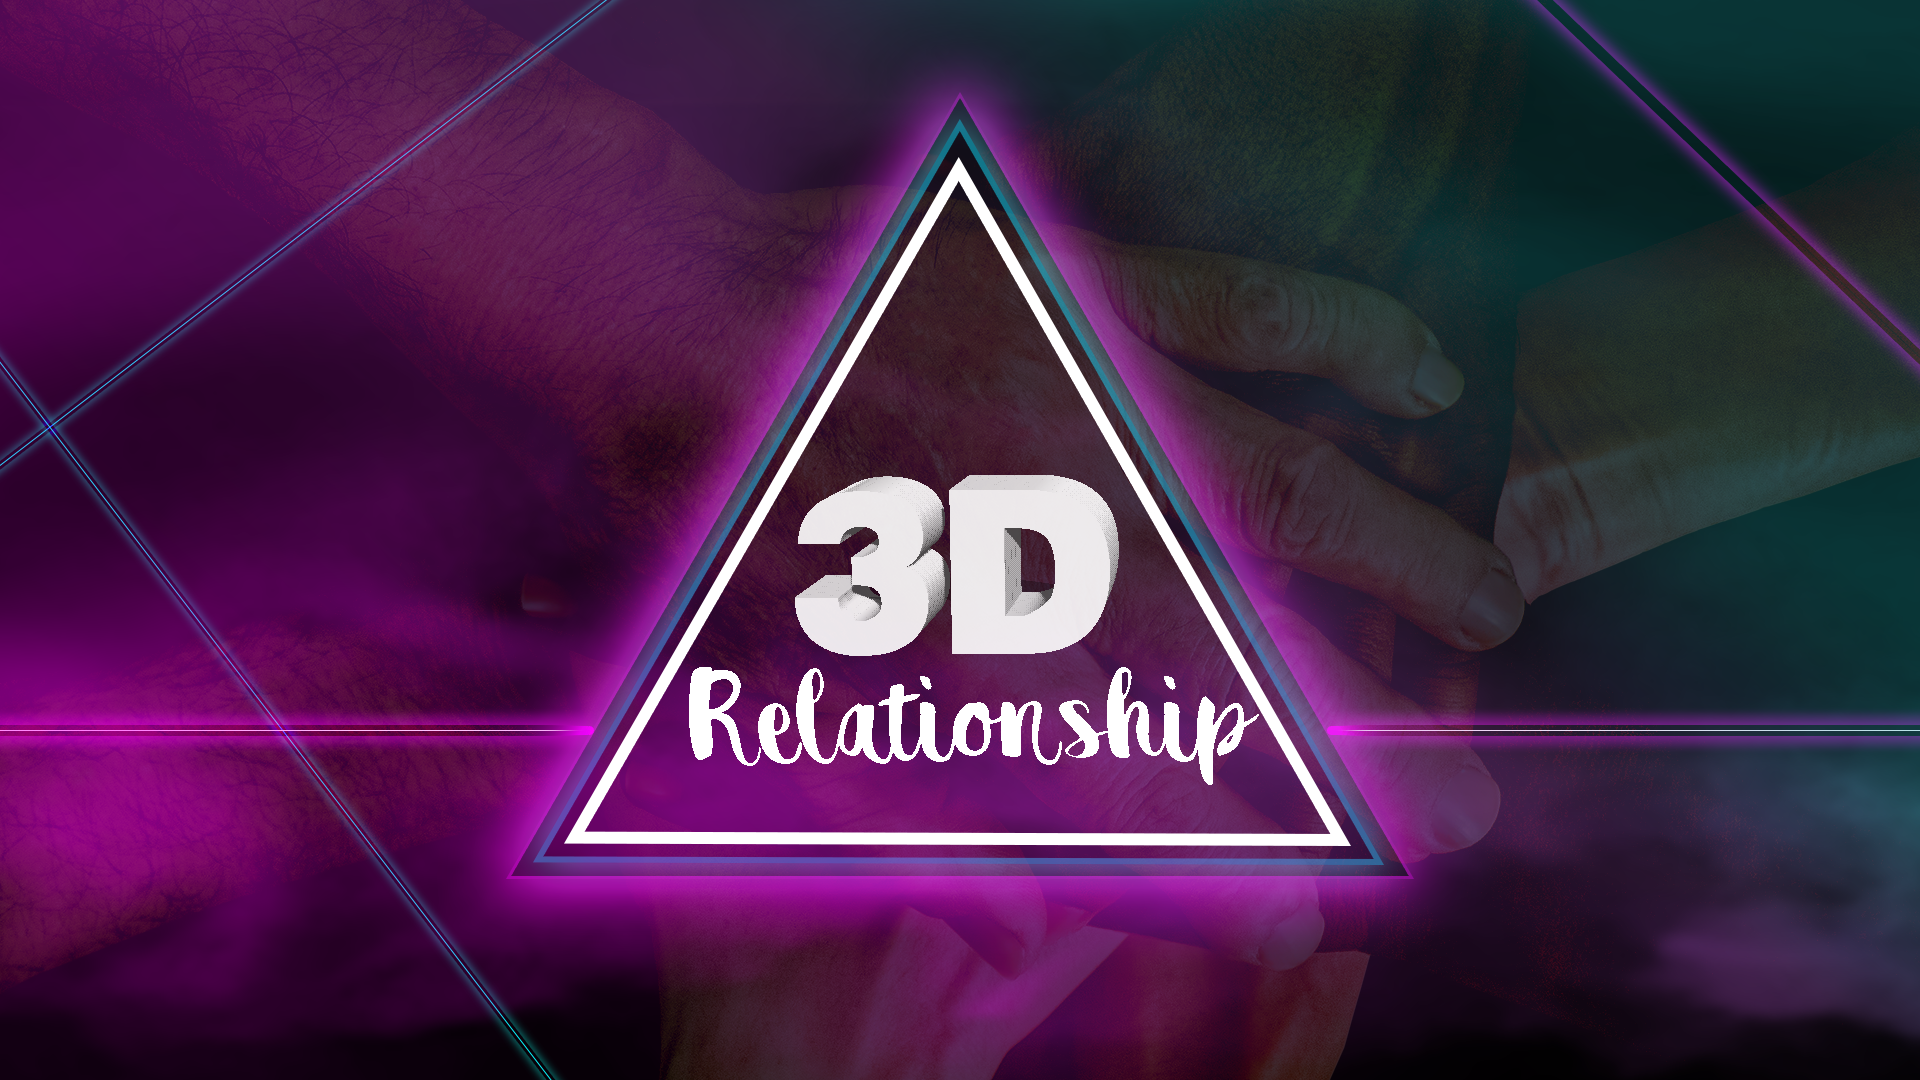 3D Relationship Series Image.png